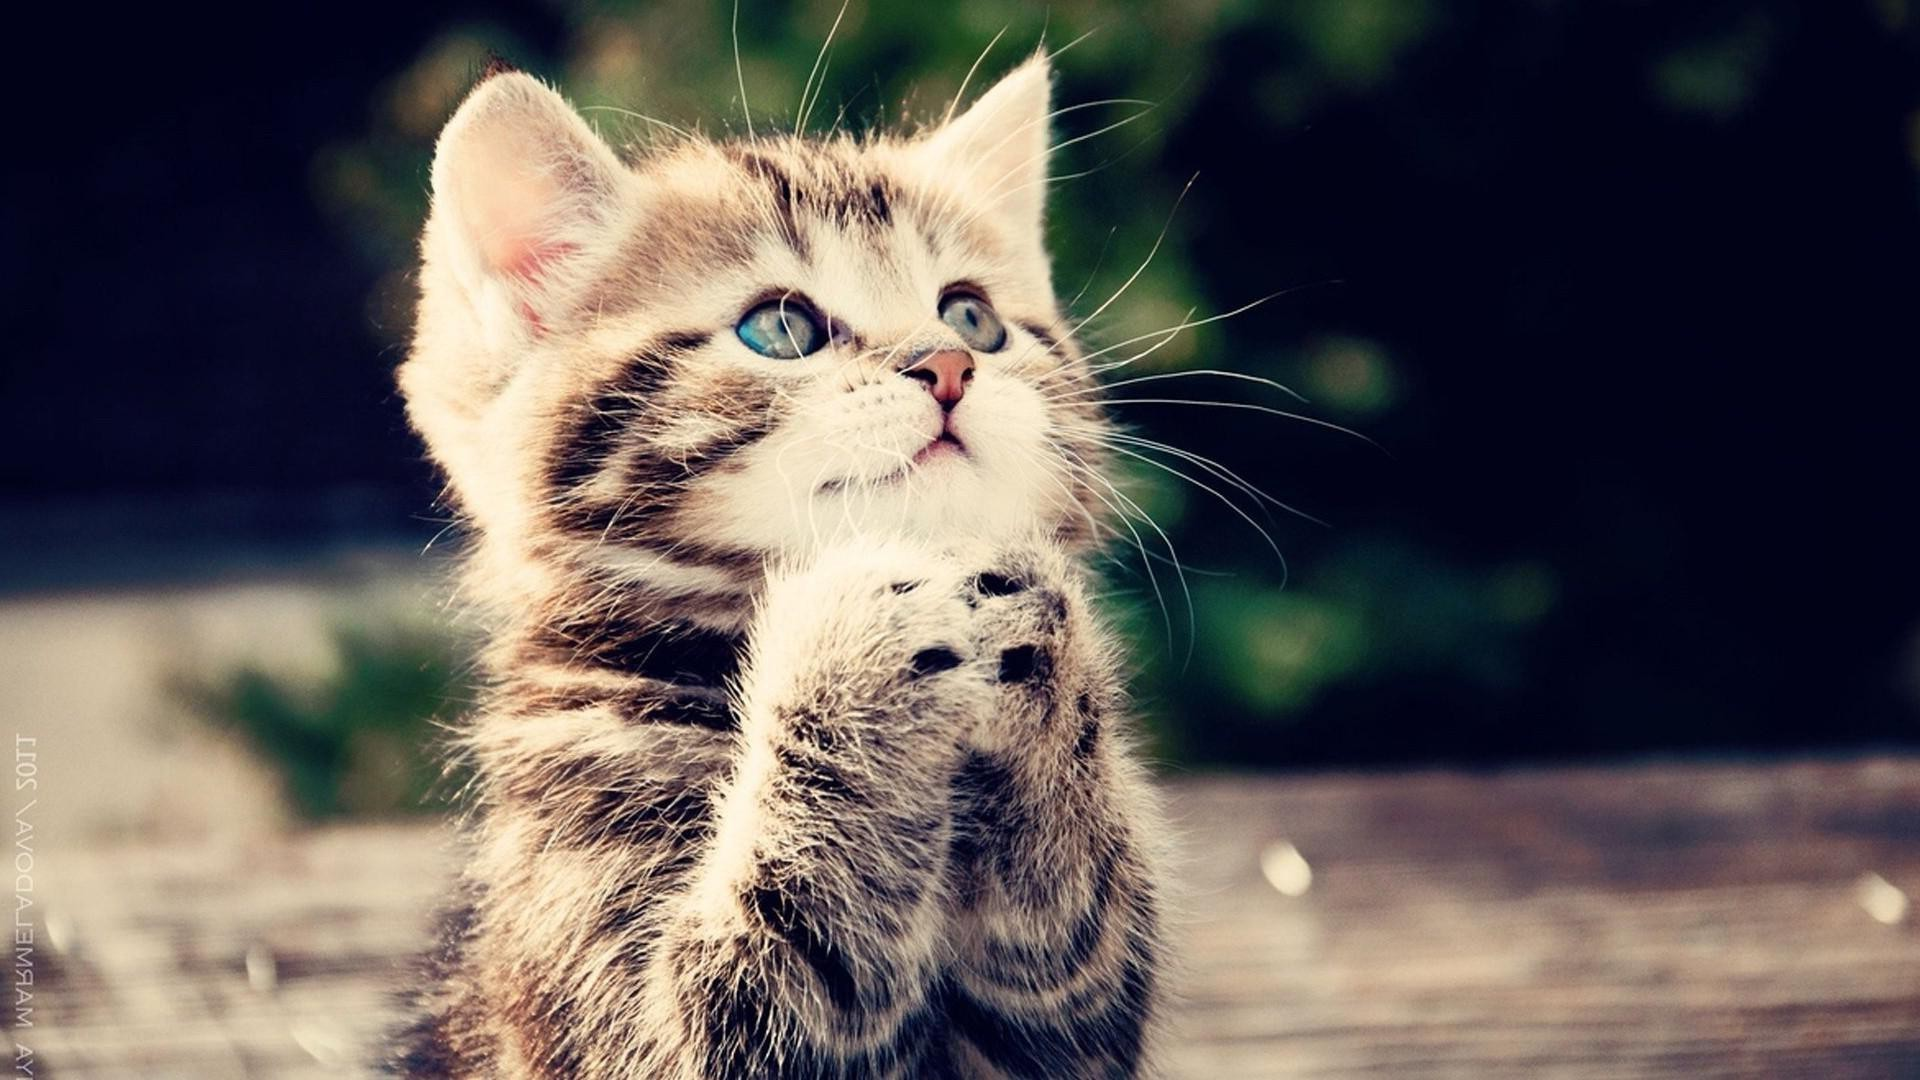 Download Free 100 Cute and Sweet Cat Wallpaper – The Quotes Land